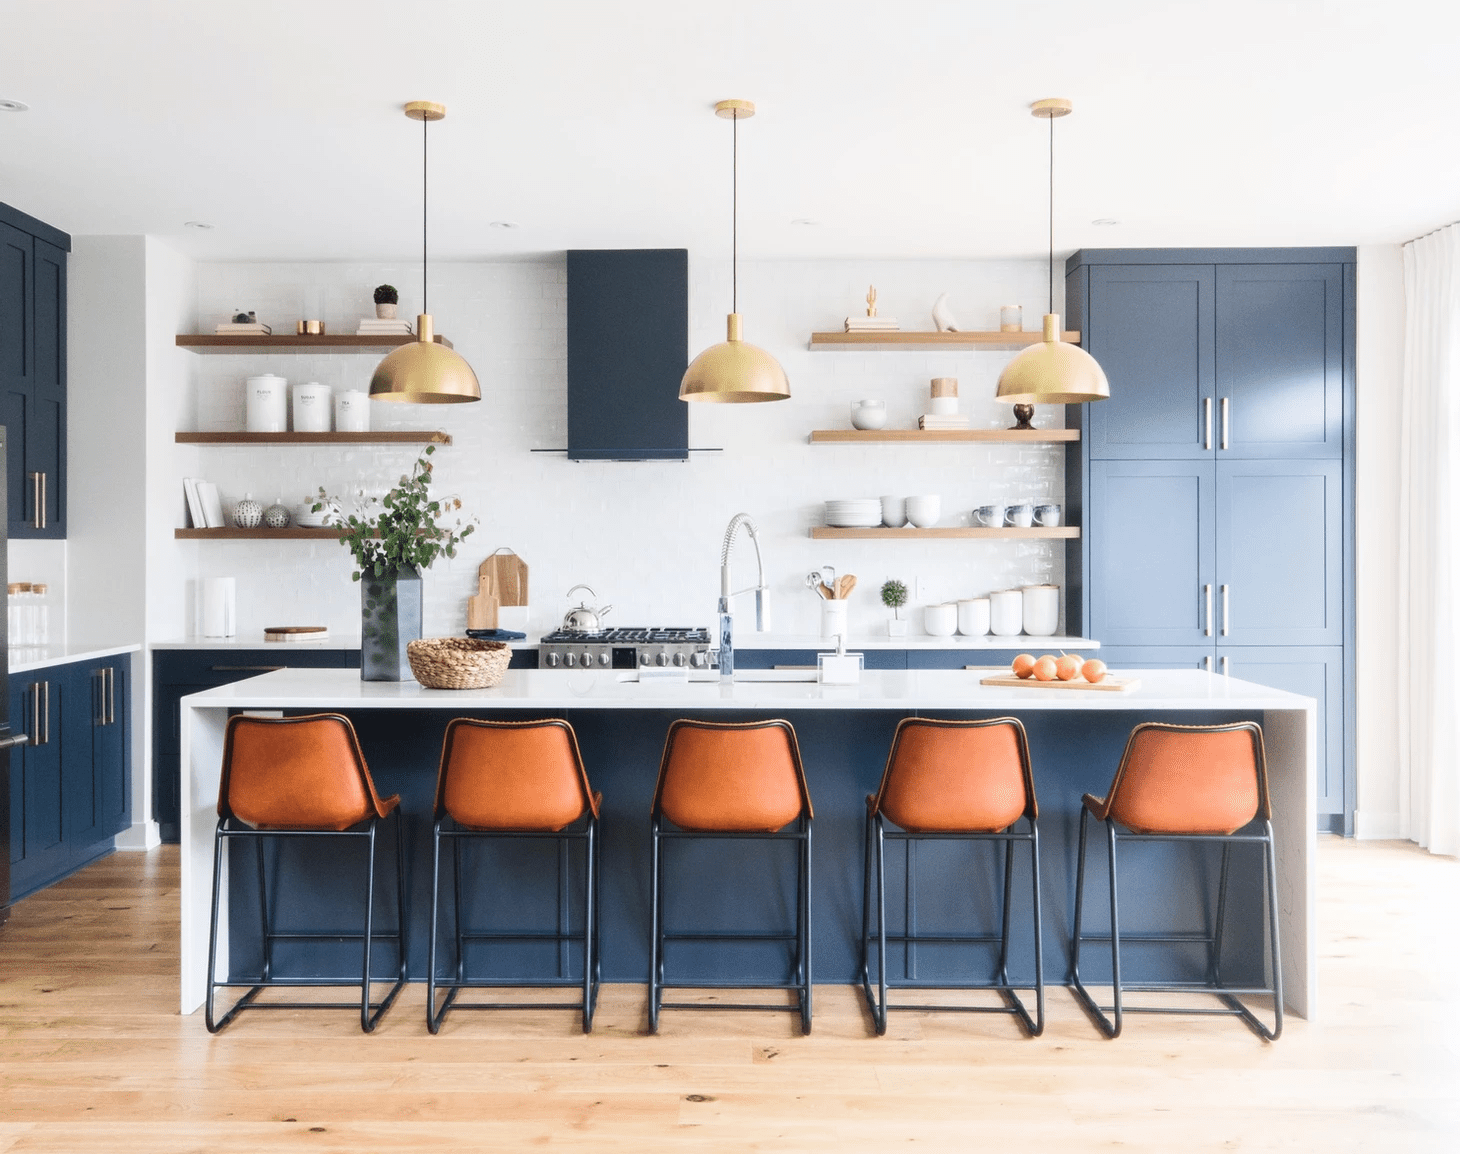 A kitchen with blue cabinets and orange barstools